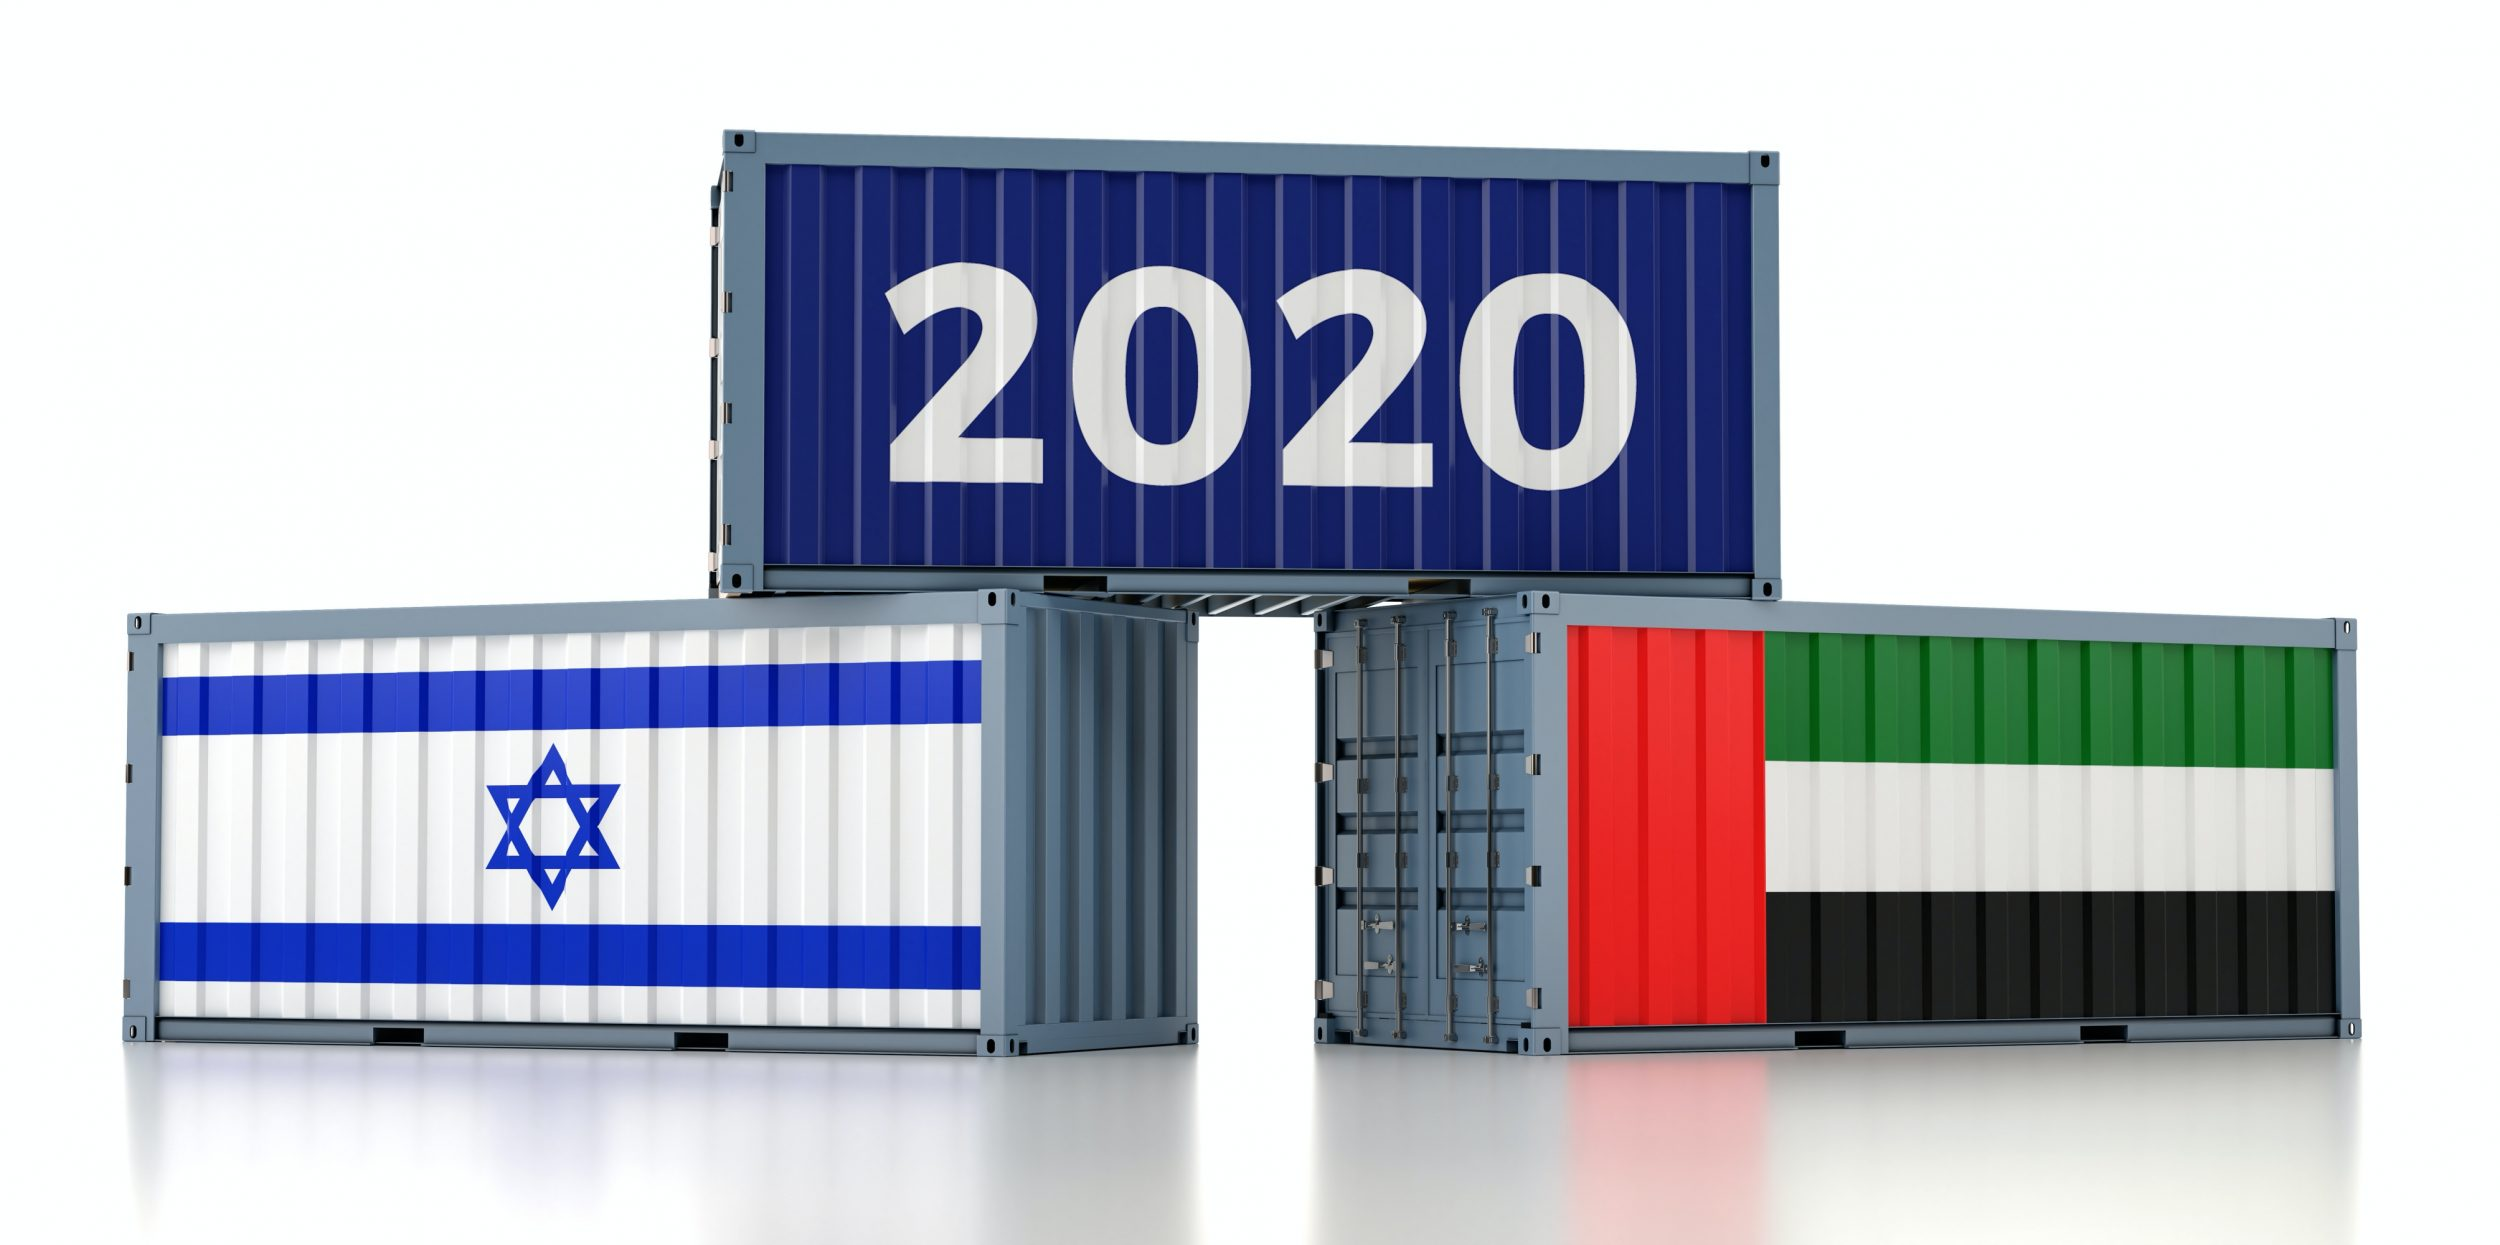 year-2020-freight-container-with-united-arab-emirates-and-israel-flag-2020-distribution-embargo_t20_3gxVvw